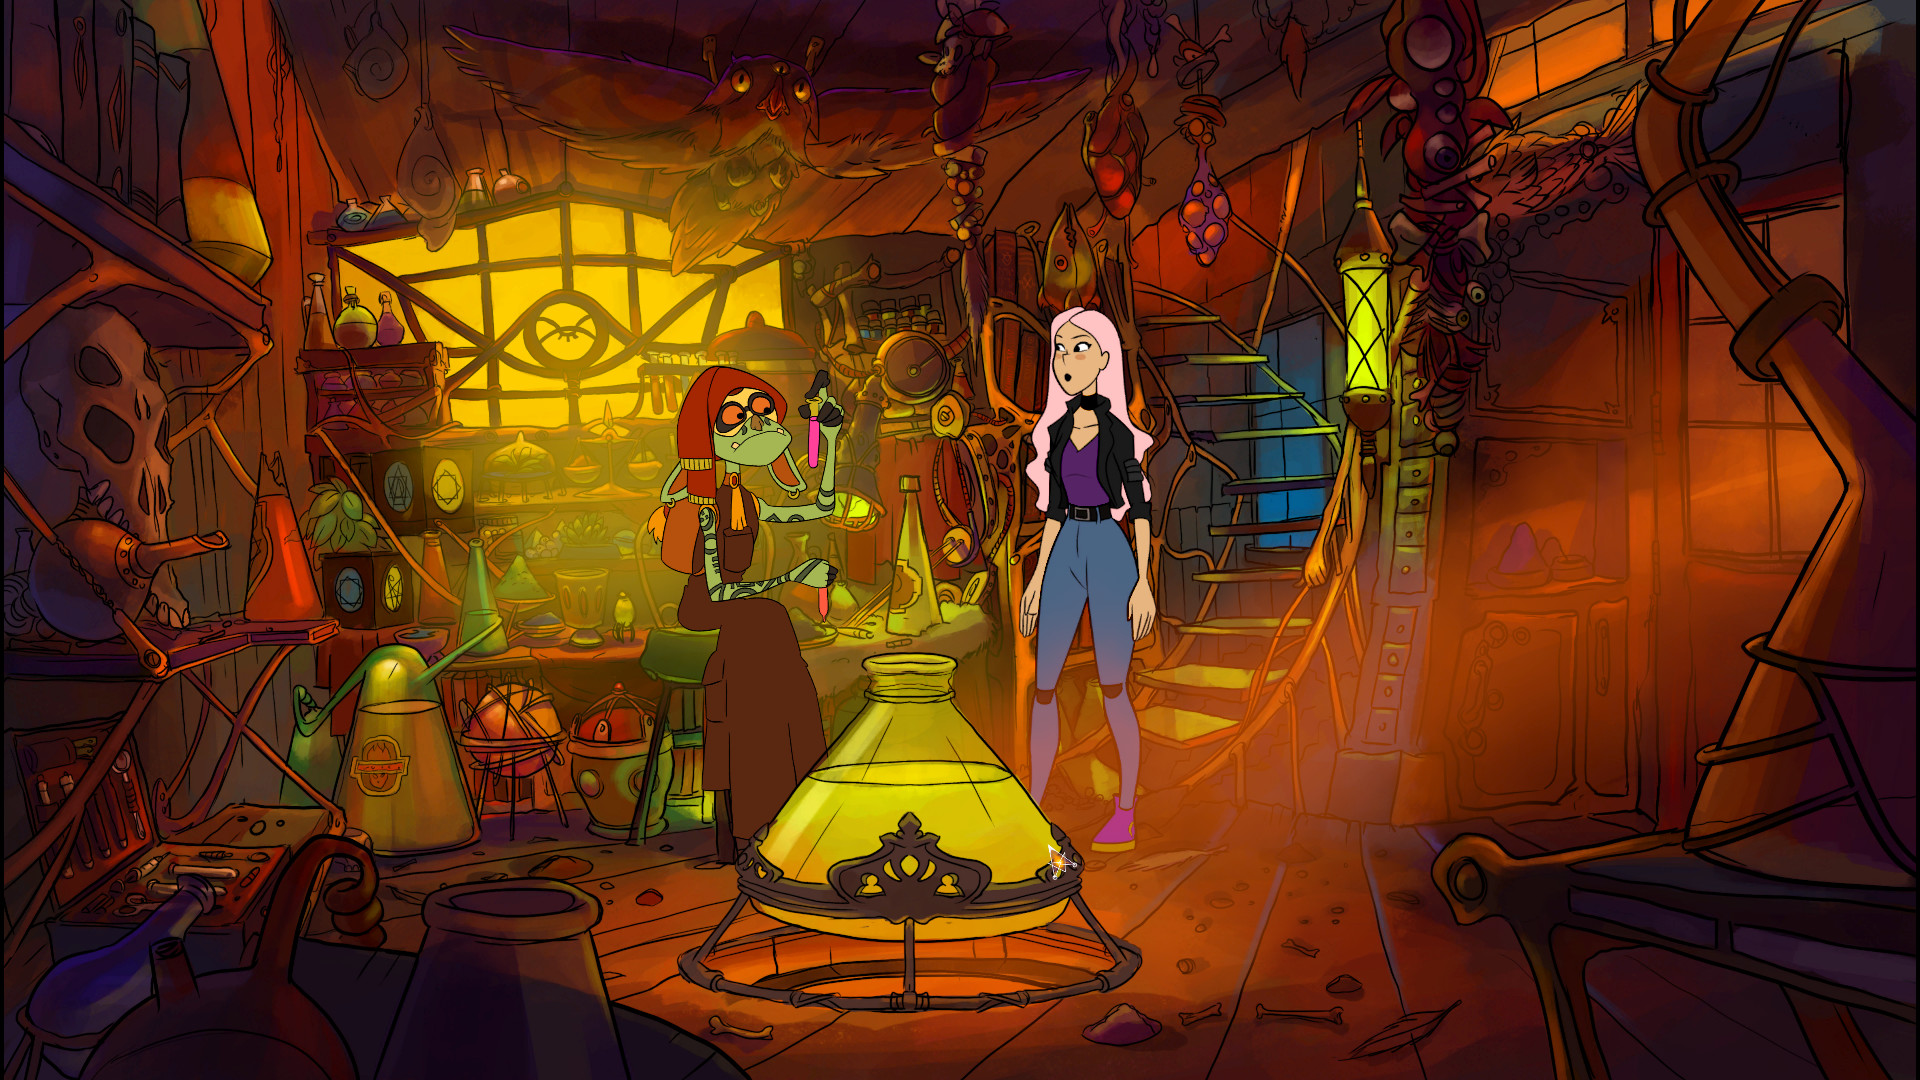 Near-Mage screenshot of main character and a goblin-like character examining test tubes in a potions lab.